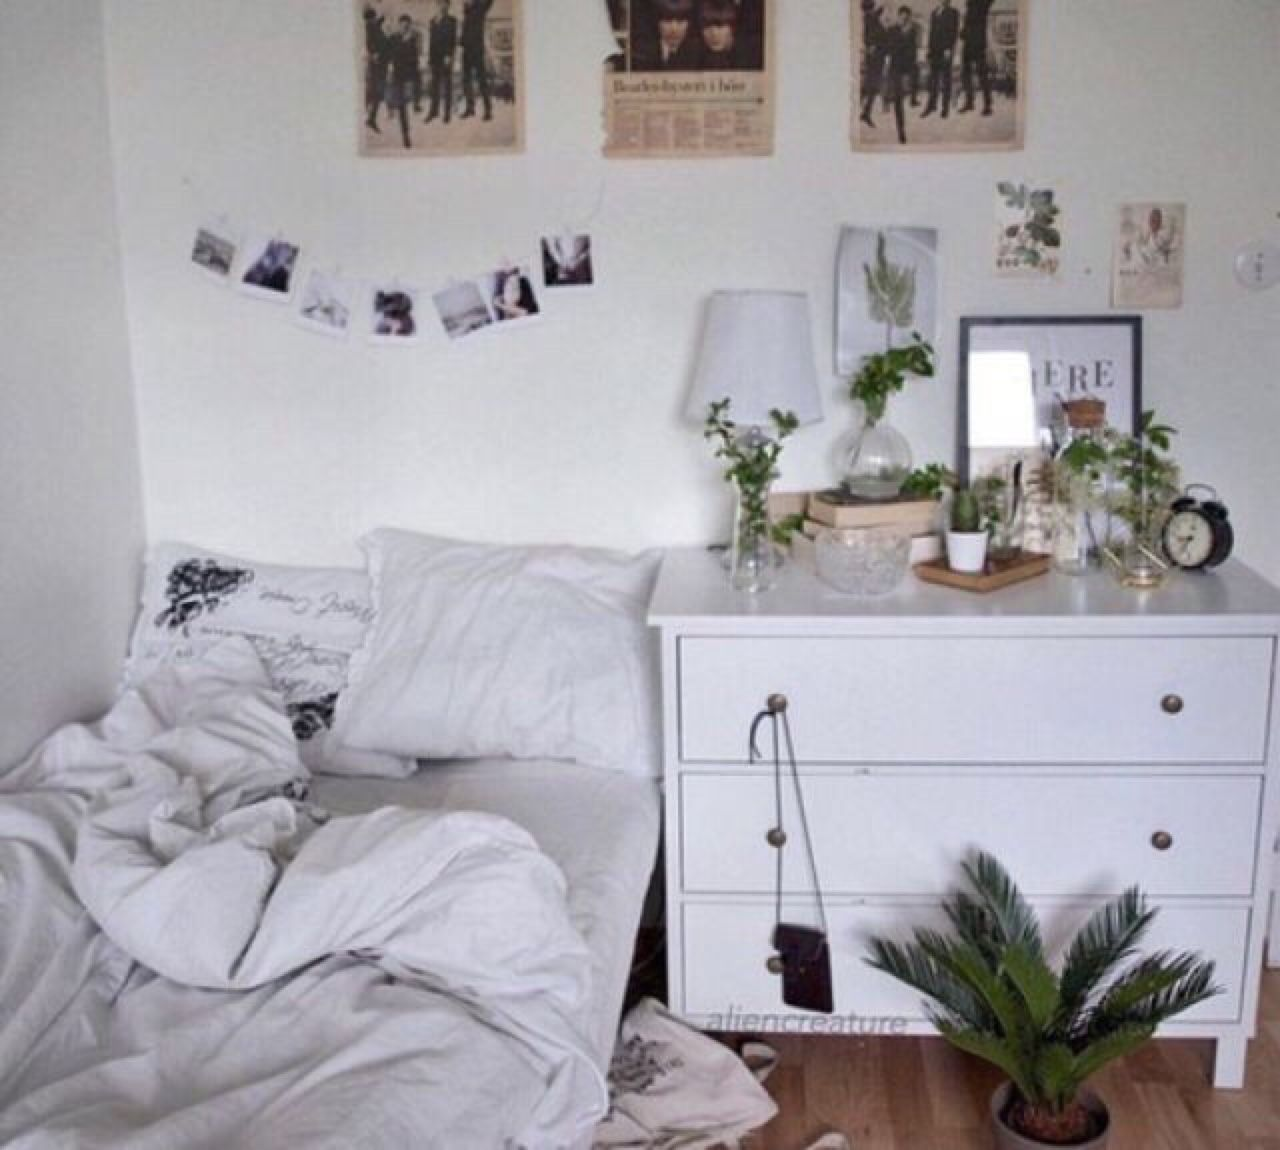 Aesthetic tumblr grunge room google search room for Room decor ideas with plants